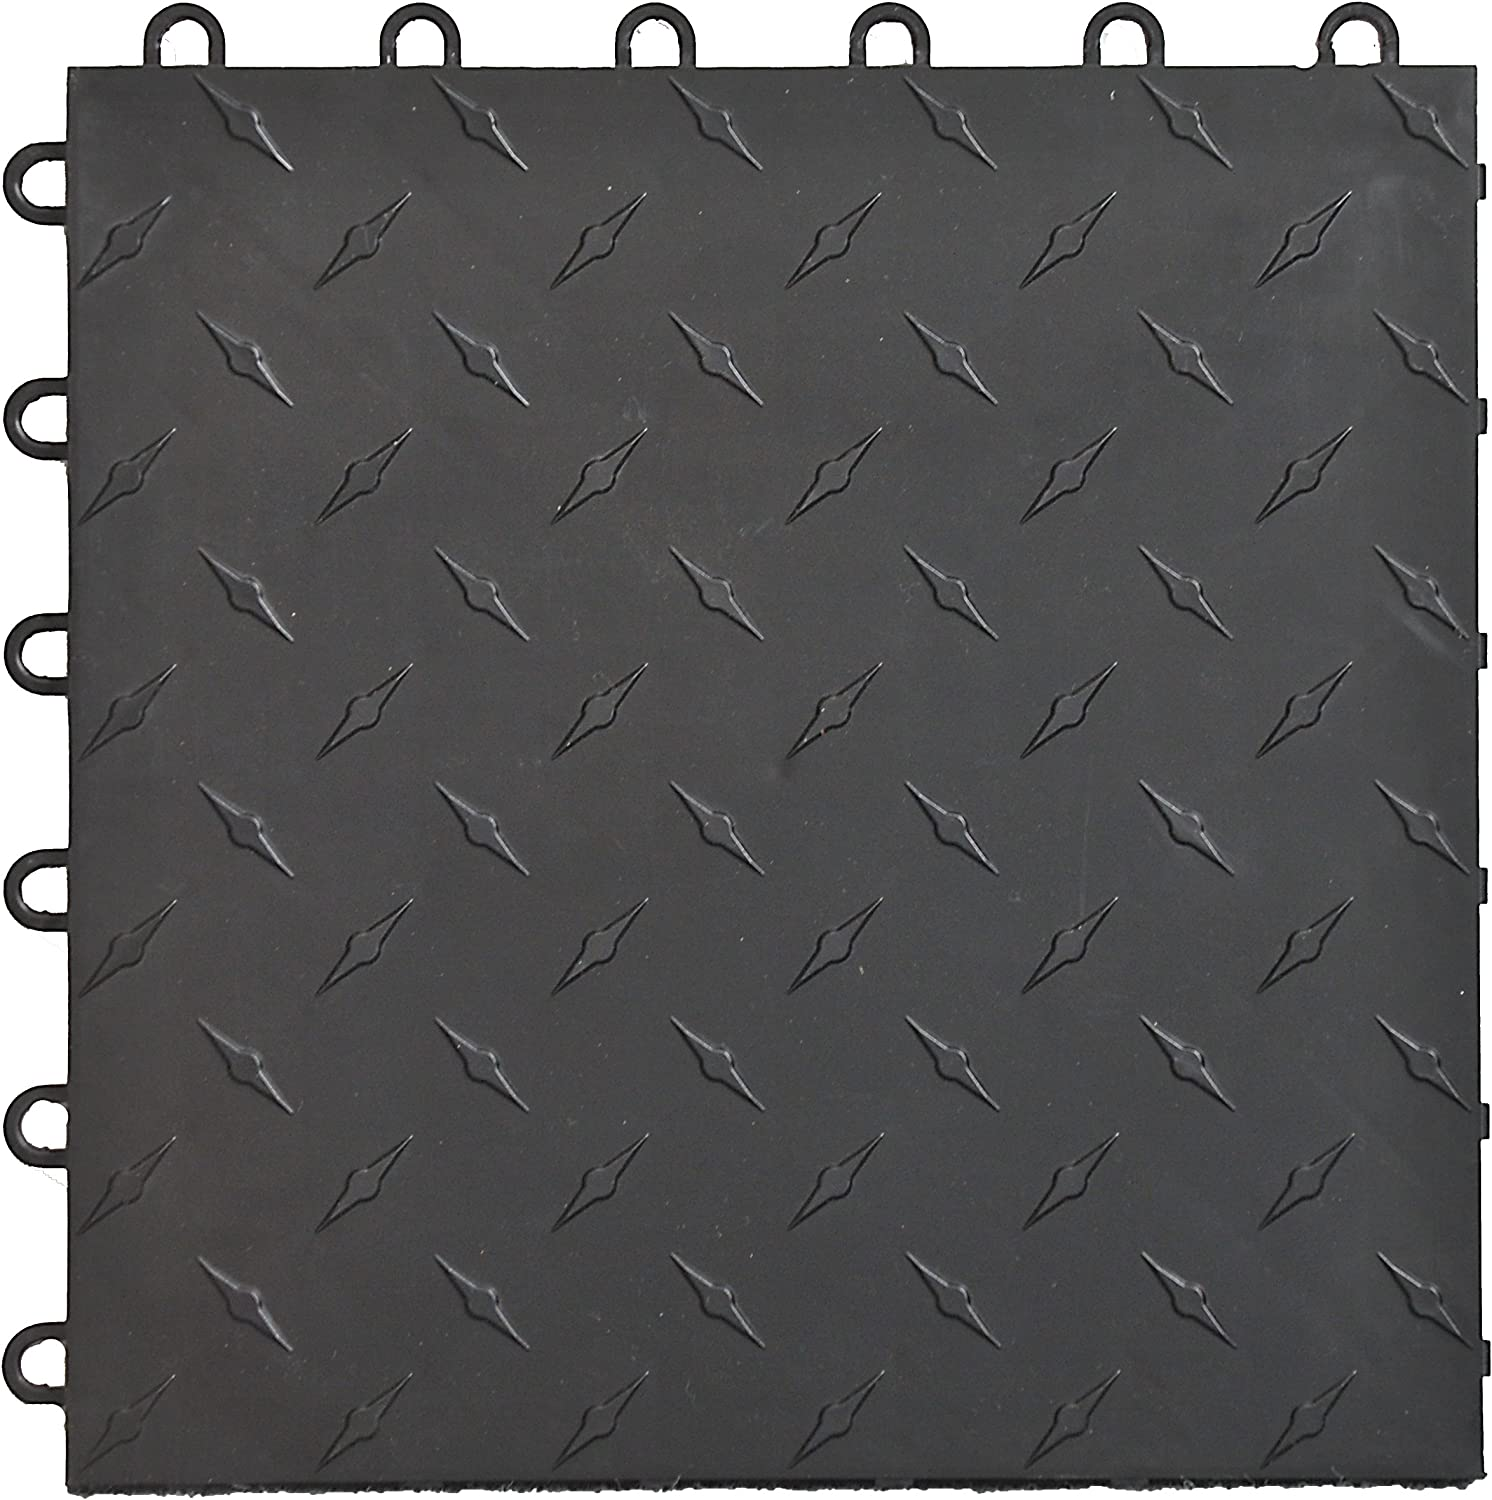 Speedway Diamond Garage Floor Tile